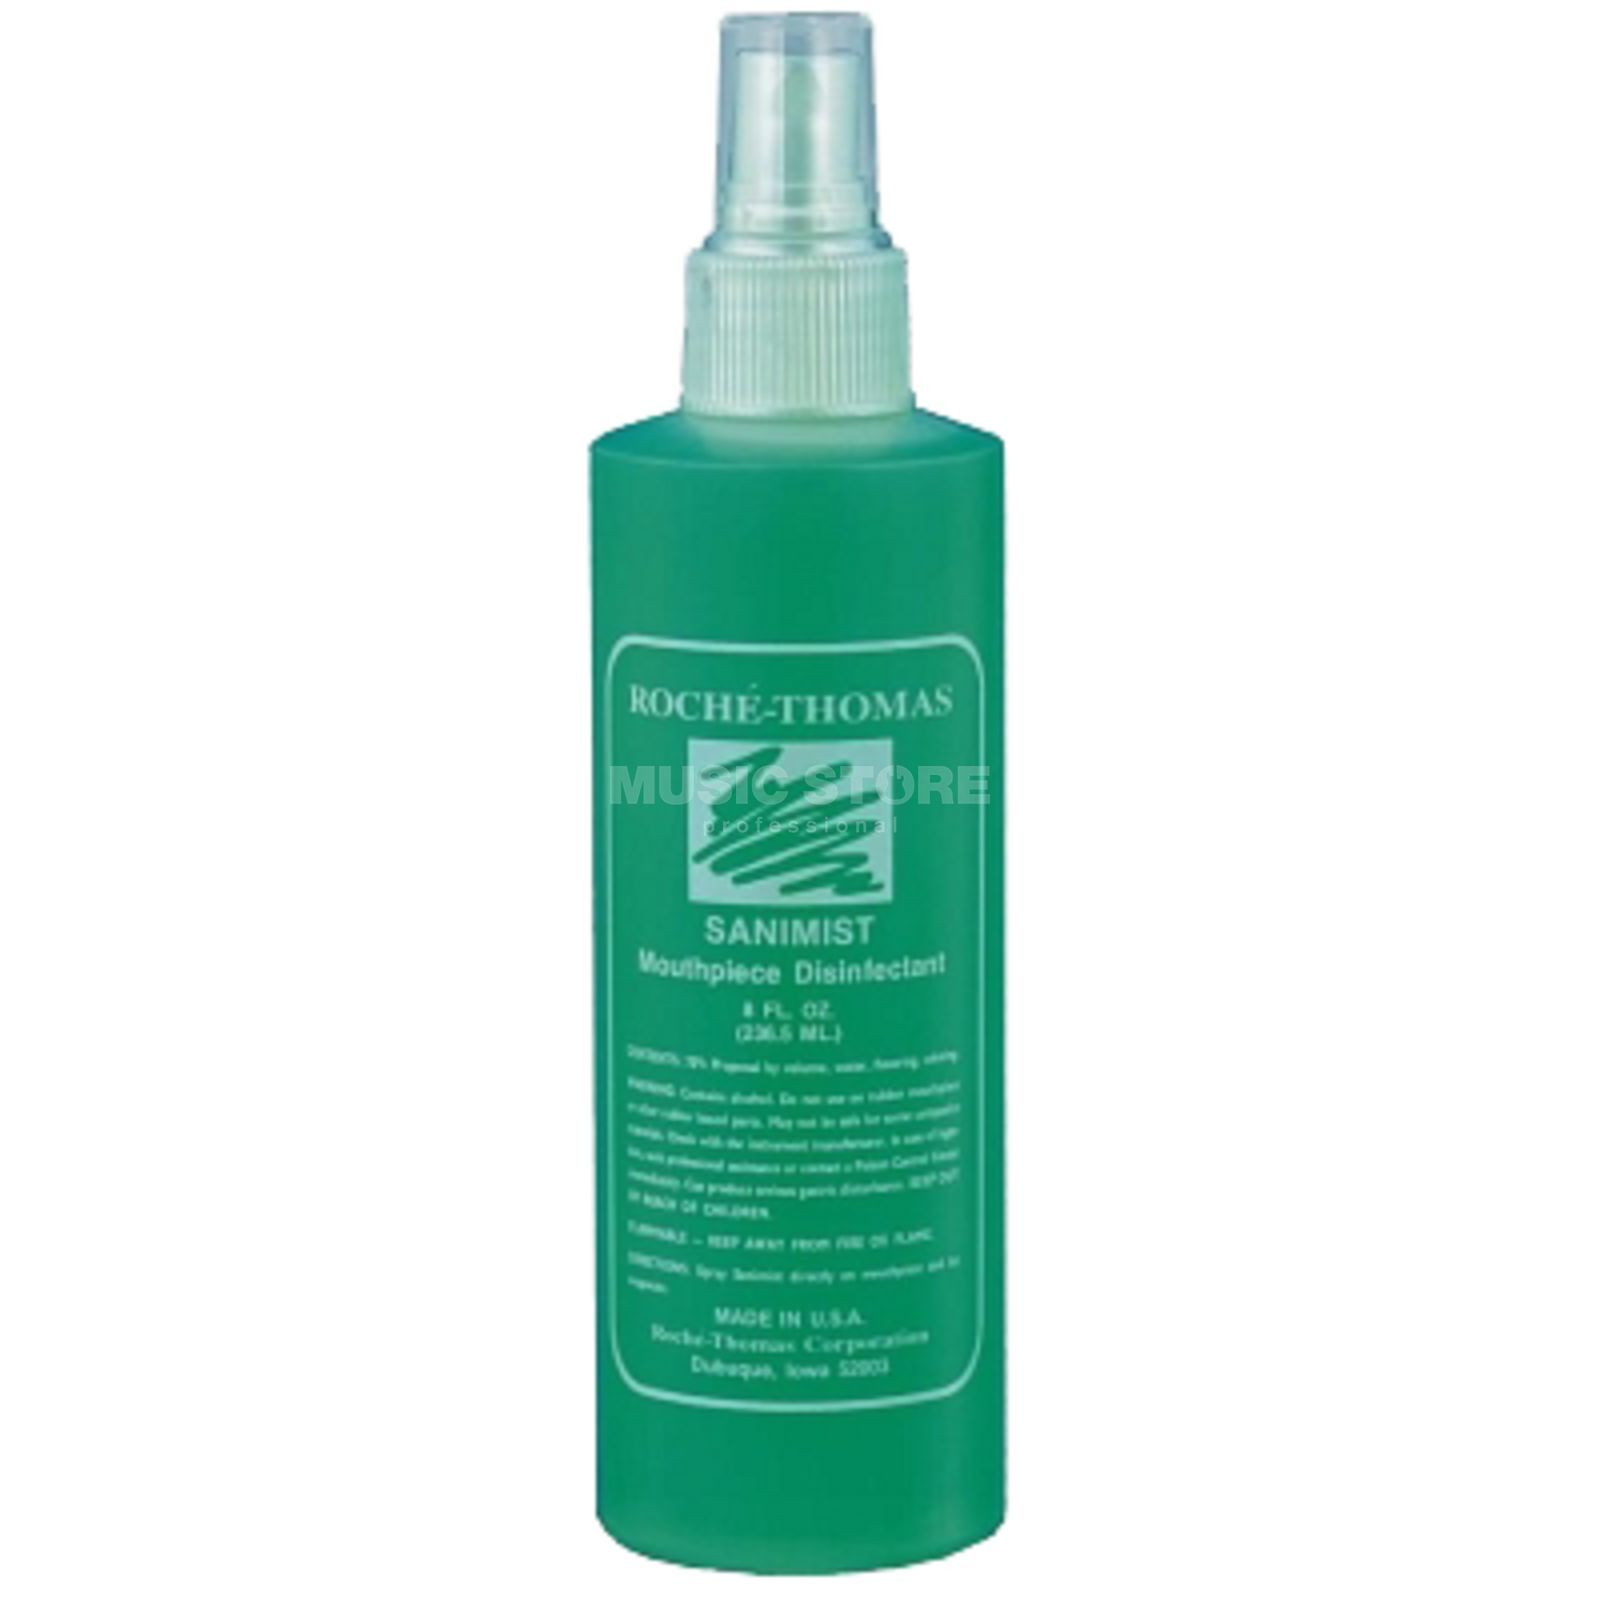 ROCHÉ-THOMAS Cleaning and Disinefectant Spray 60ml (100ml = 9.67Ç) Product Image